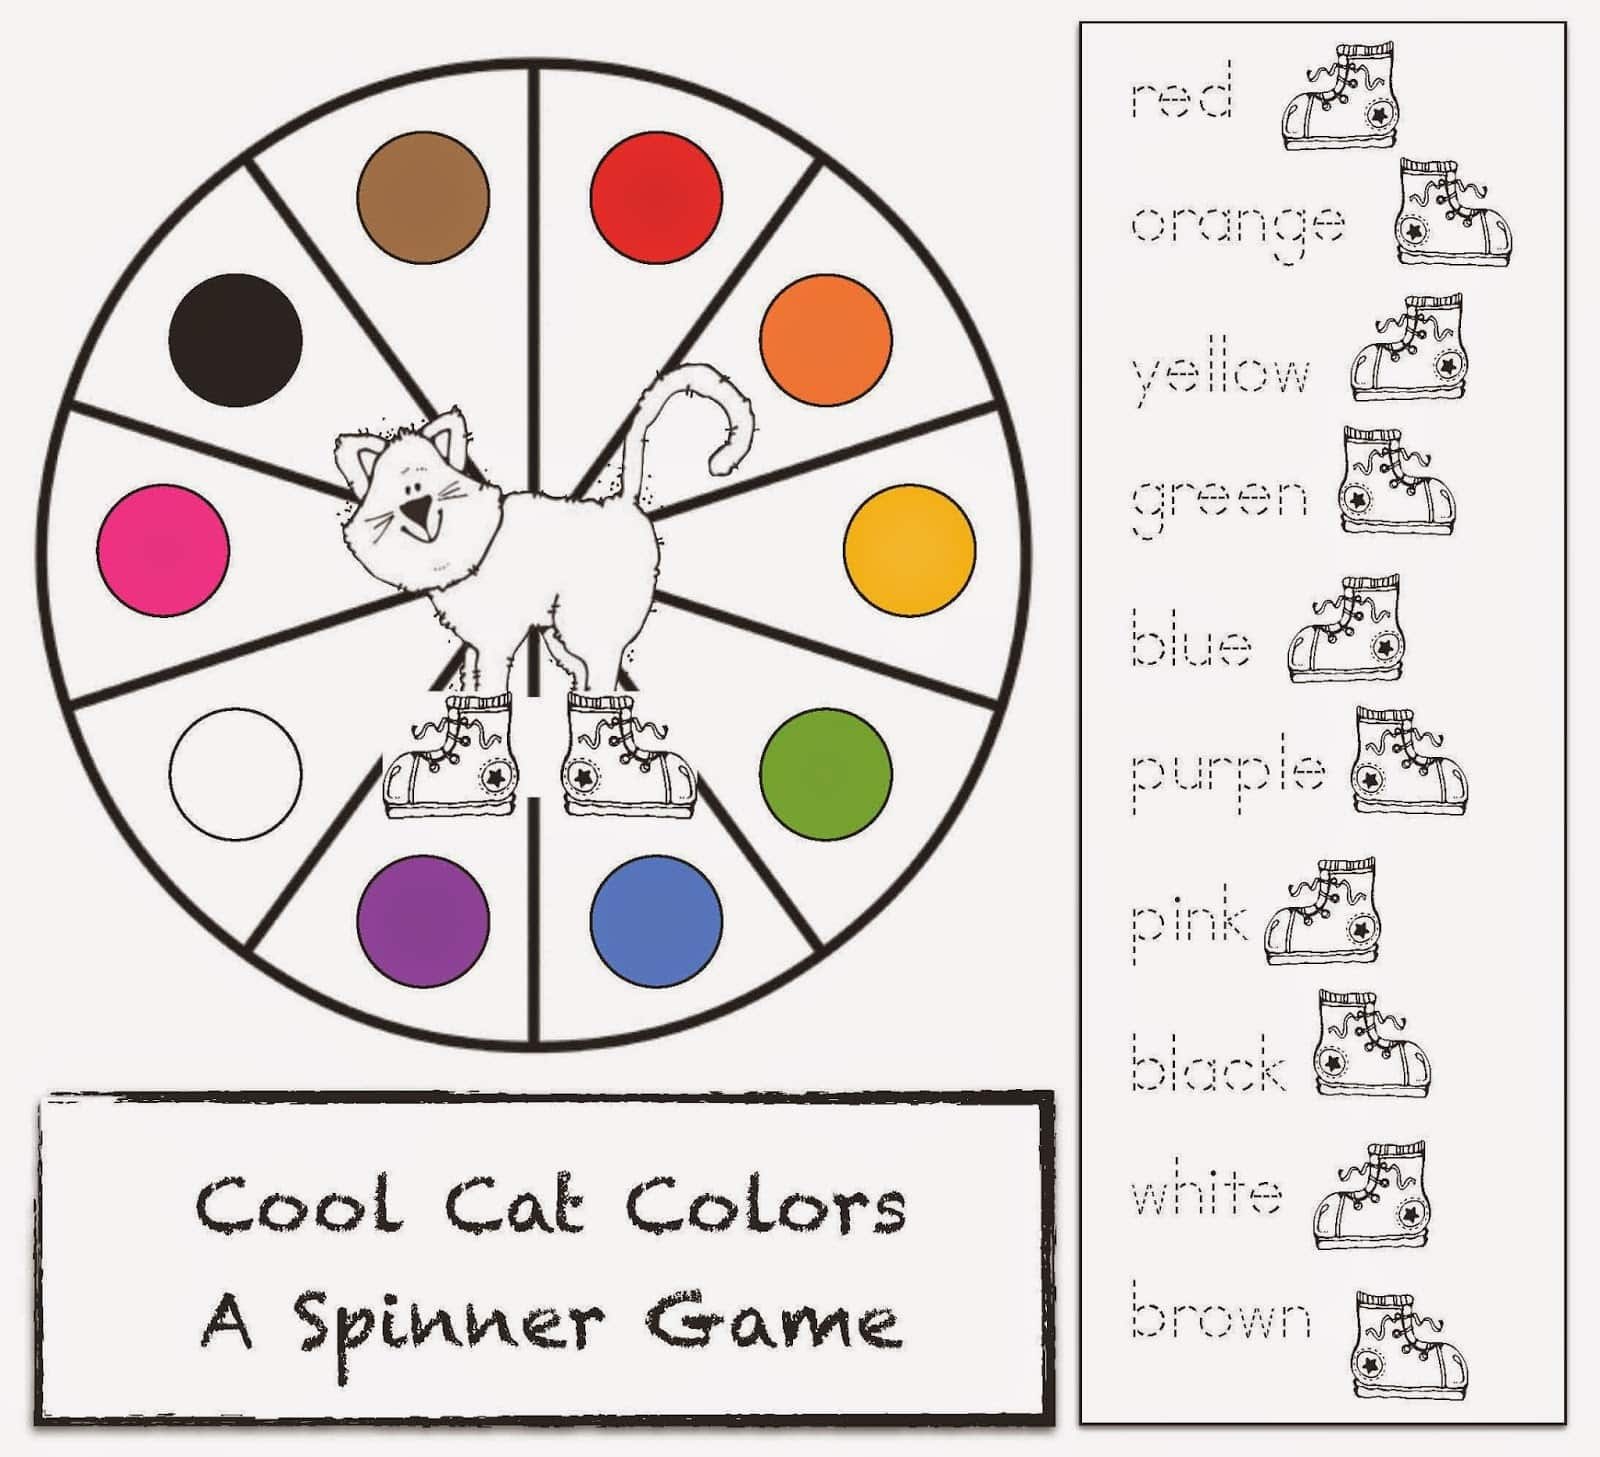 Pete The Cat Spinner Game For I Love My White Shoes